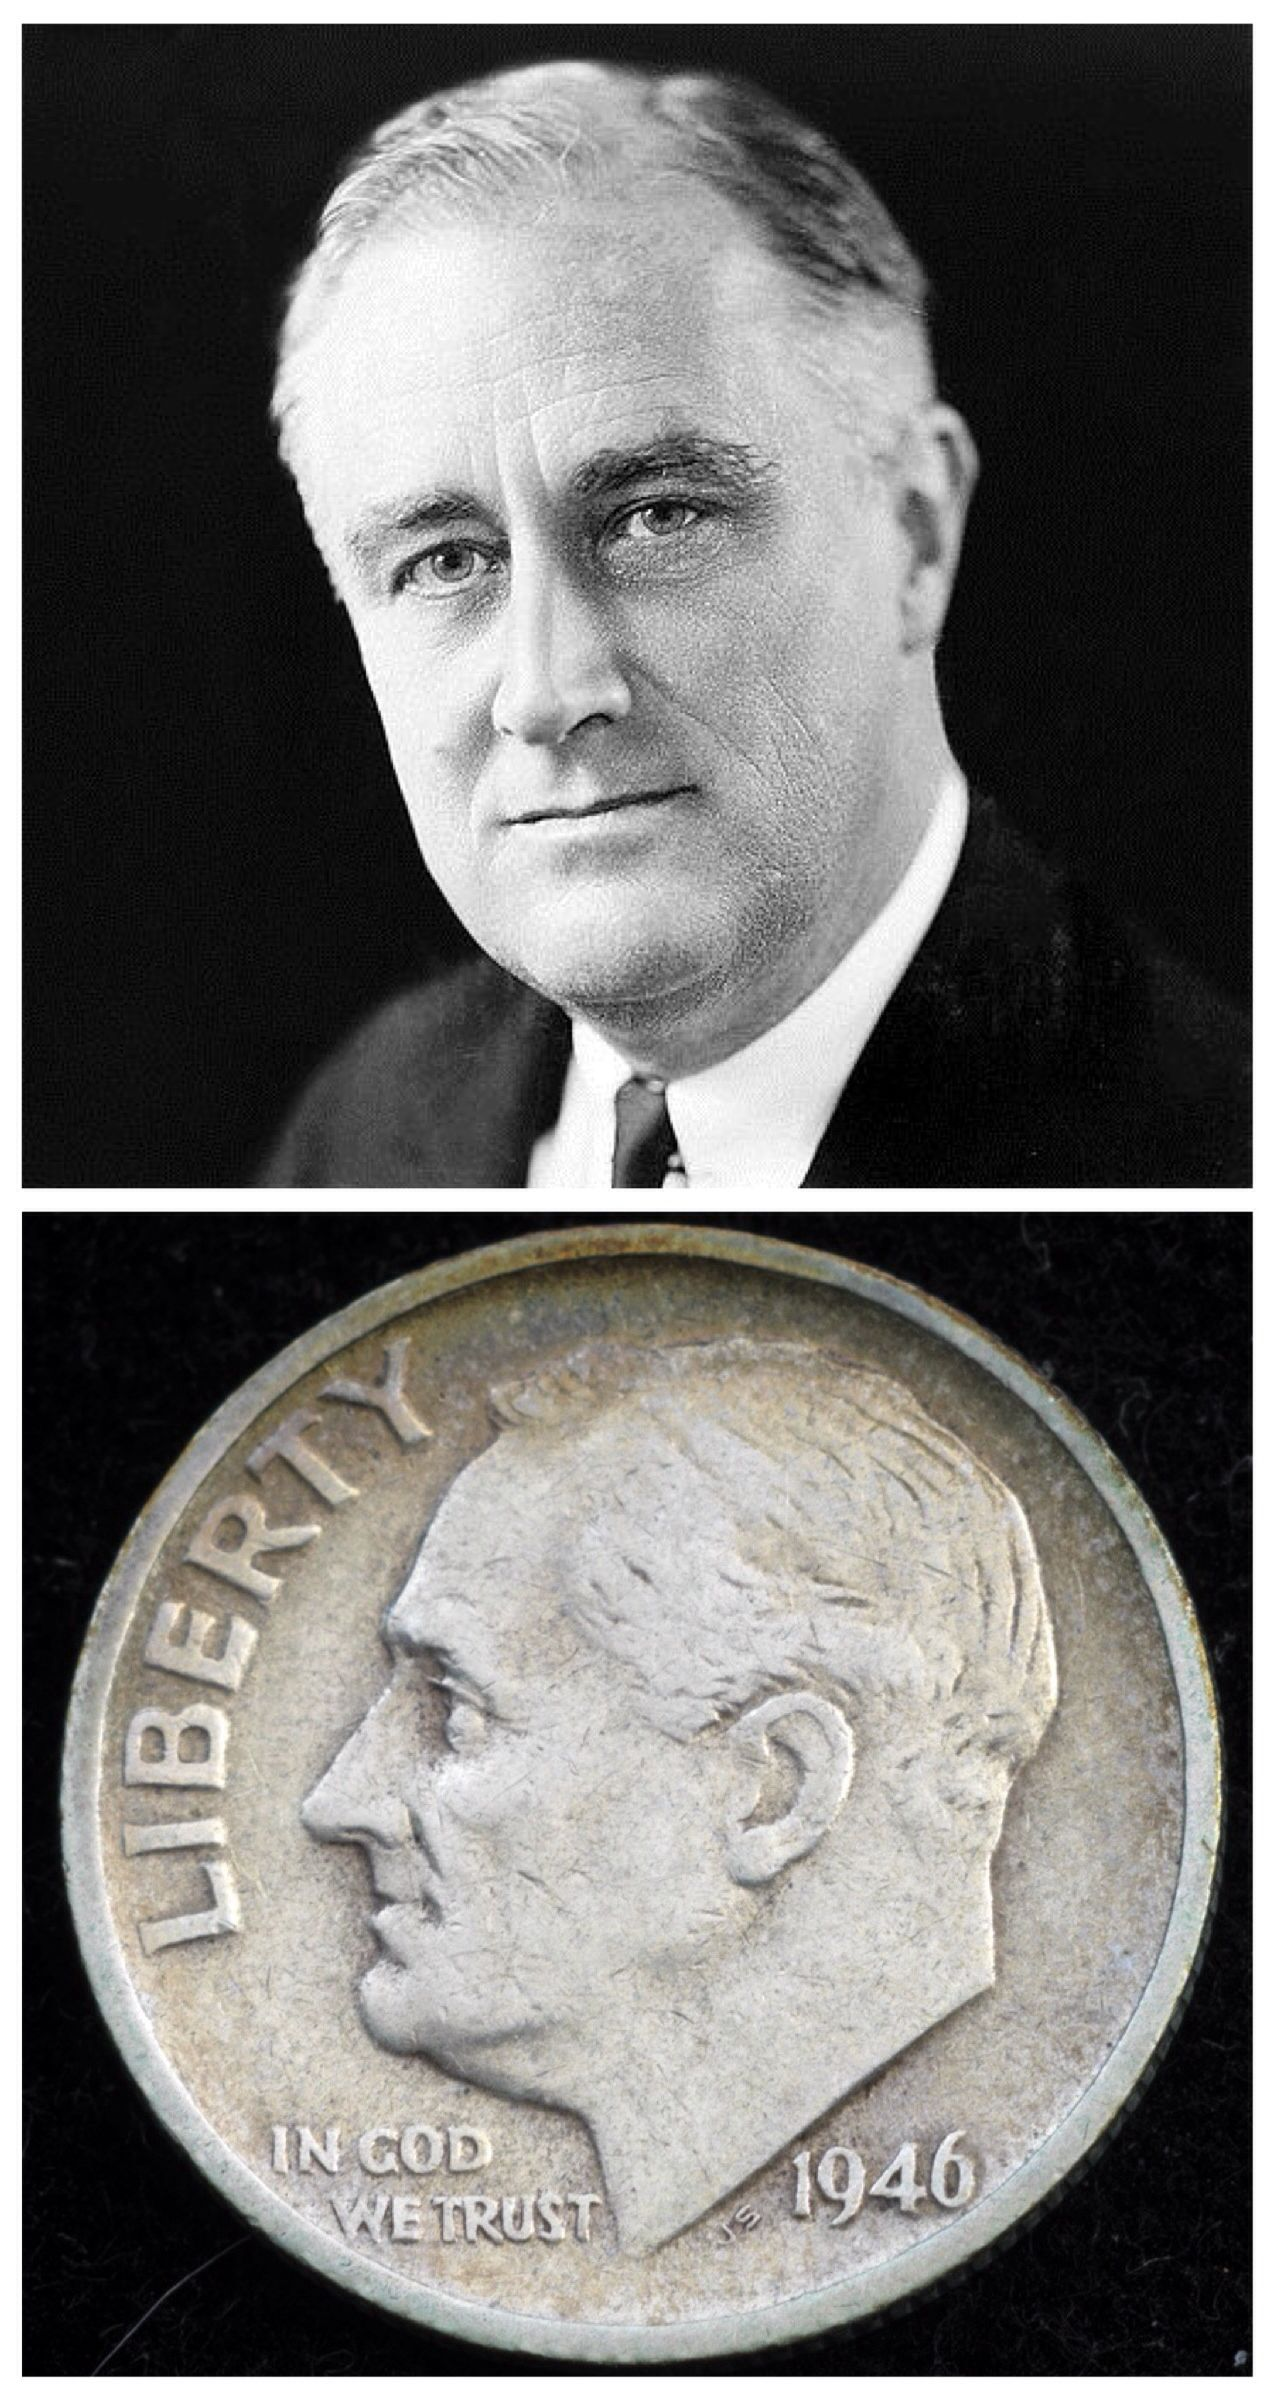 1938 - The March of Dimes is established by President ...